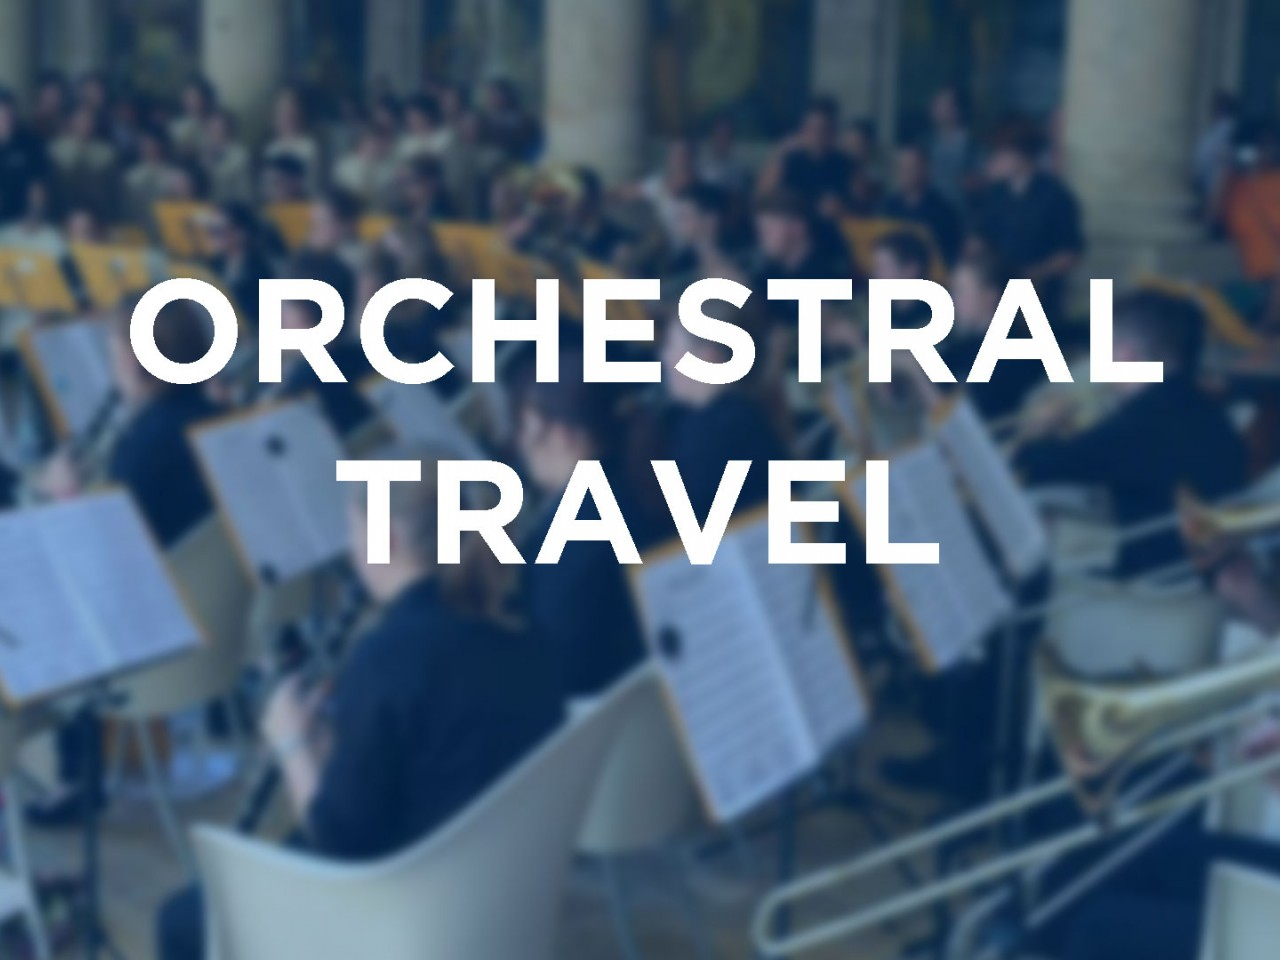 TRAVEL FOR ORCHESTRAS